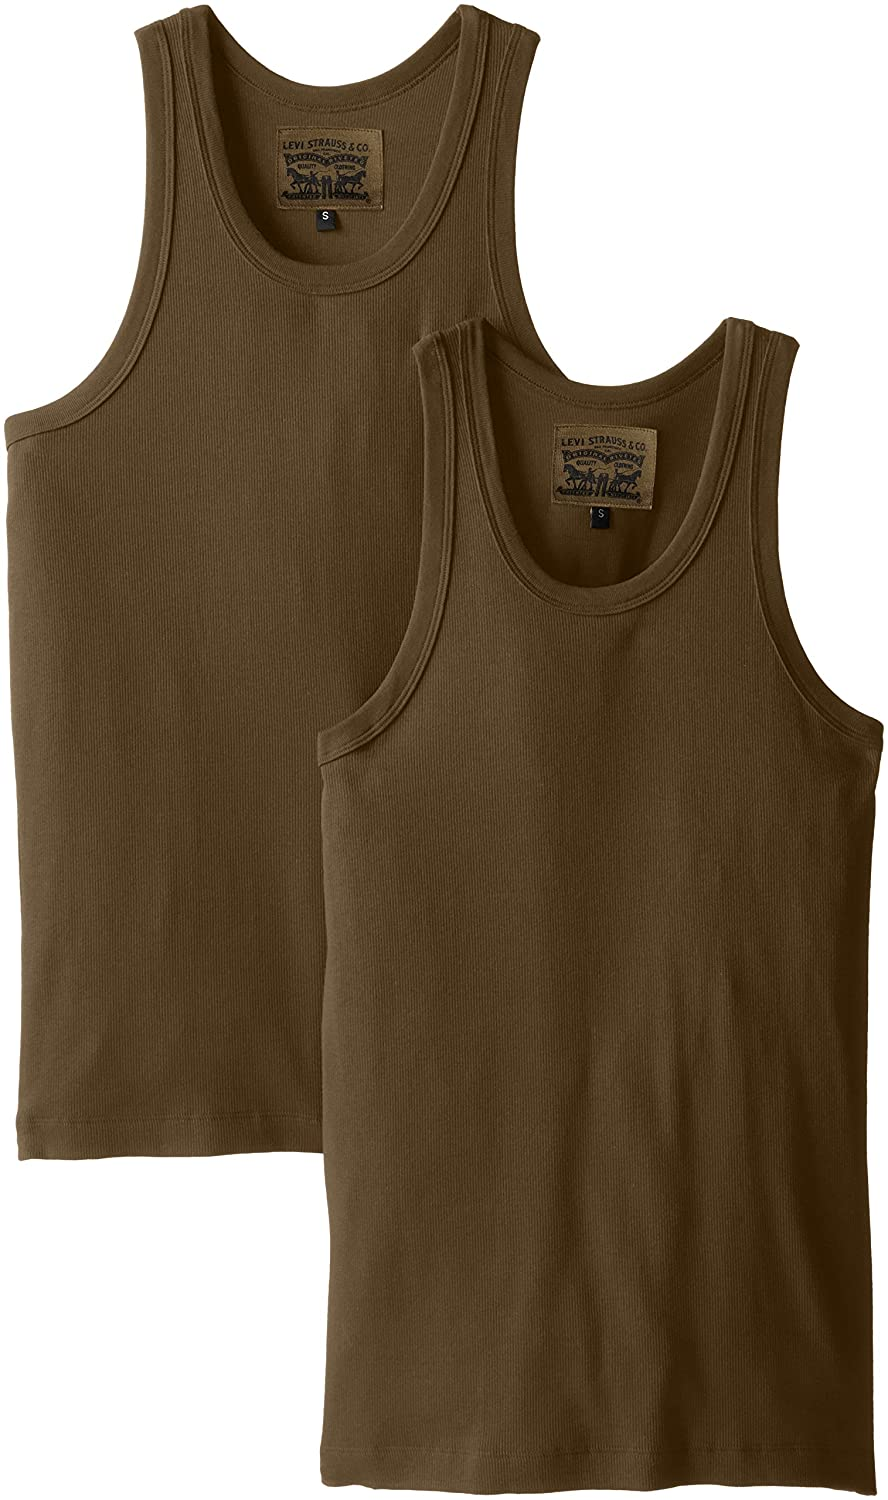 c52d90896a9eeb Levi s Men s 300 Series 2-Pack Cotton Ribbed Tank Top at Amazon Men s  Clothing store